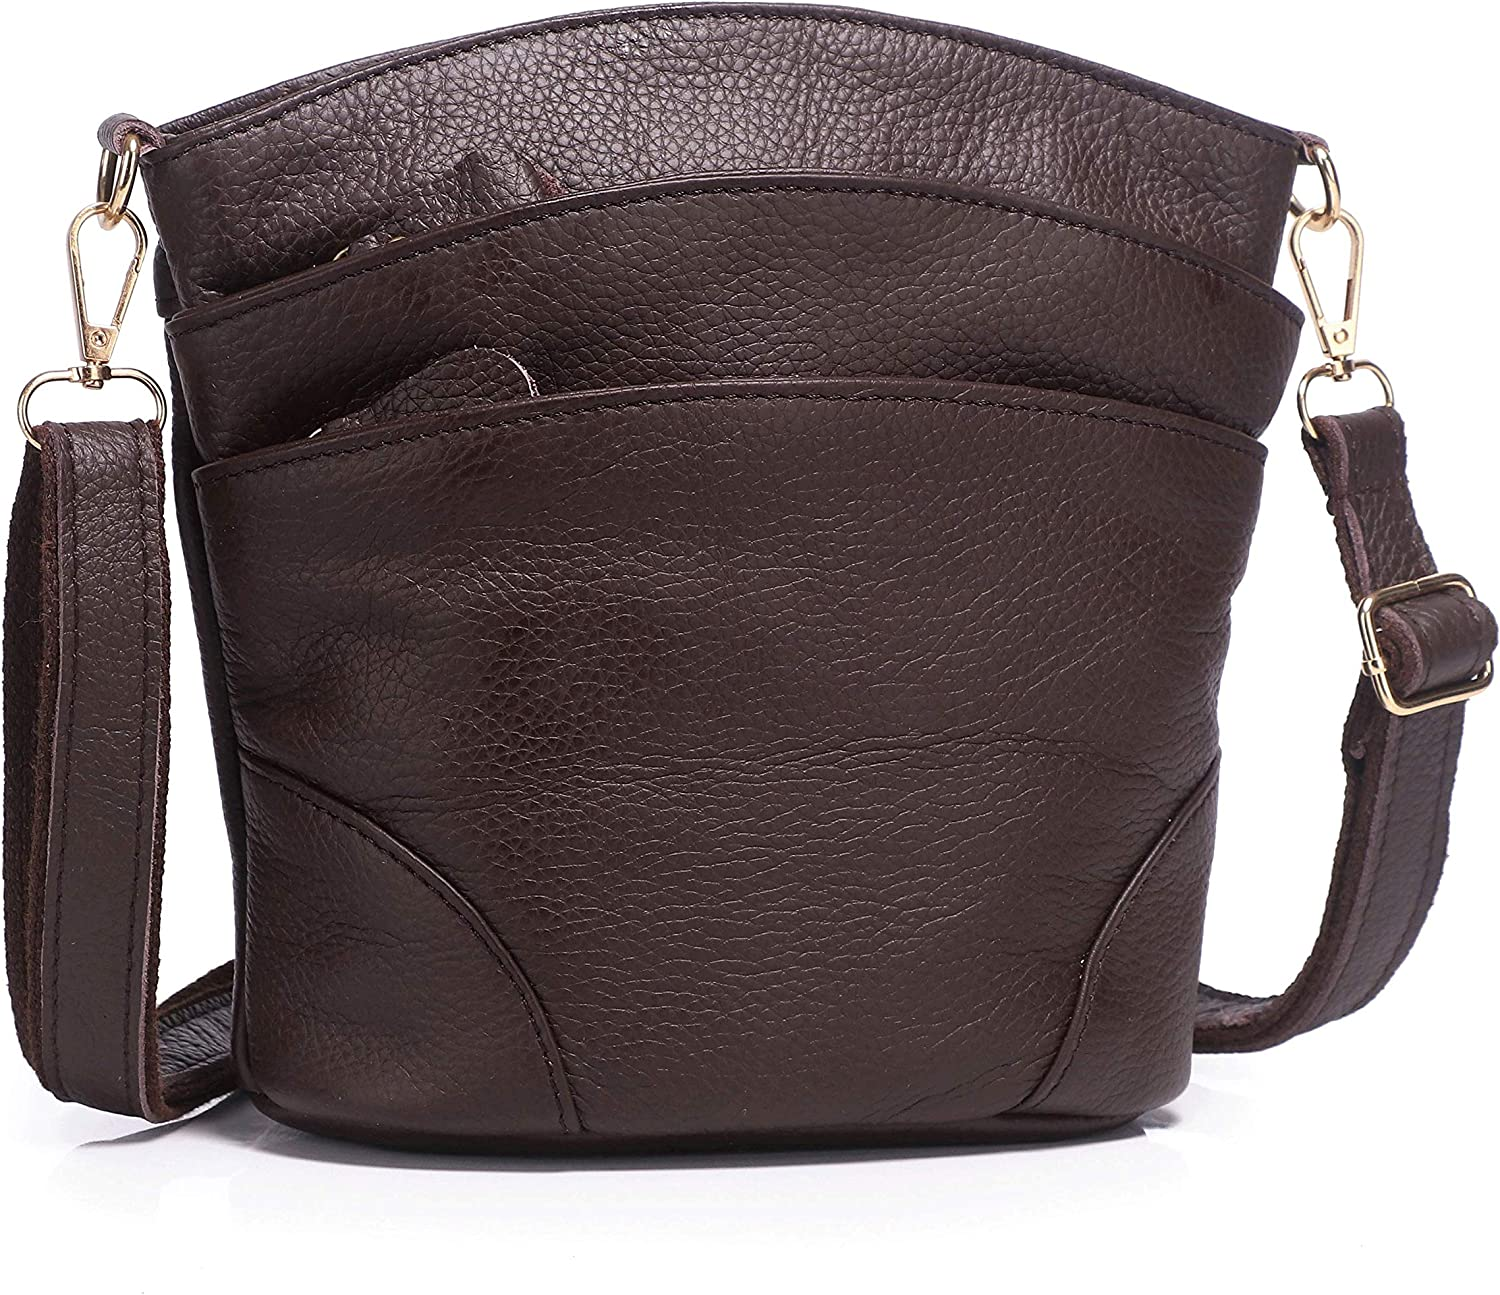 Leather Crossbody Bags for Women, Pocketbooks Purses and Handbags Ladies' Small Multi Pocket Light weight Shoulder bag (Coffee)